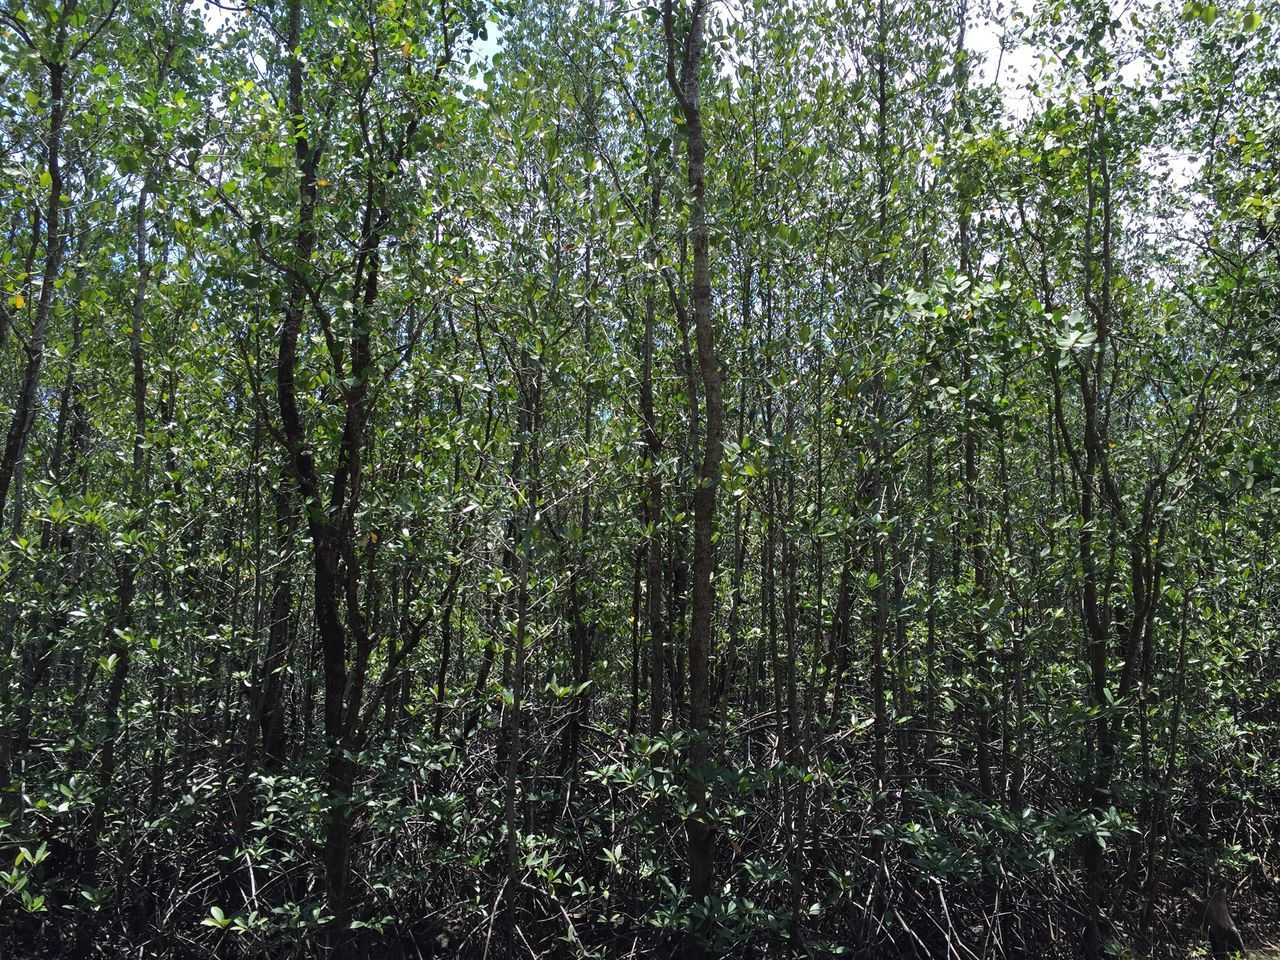 Mangrove Forest Mangroves Nature's Diversities Nature Photography Outdoor Pictures